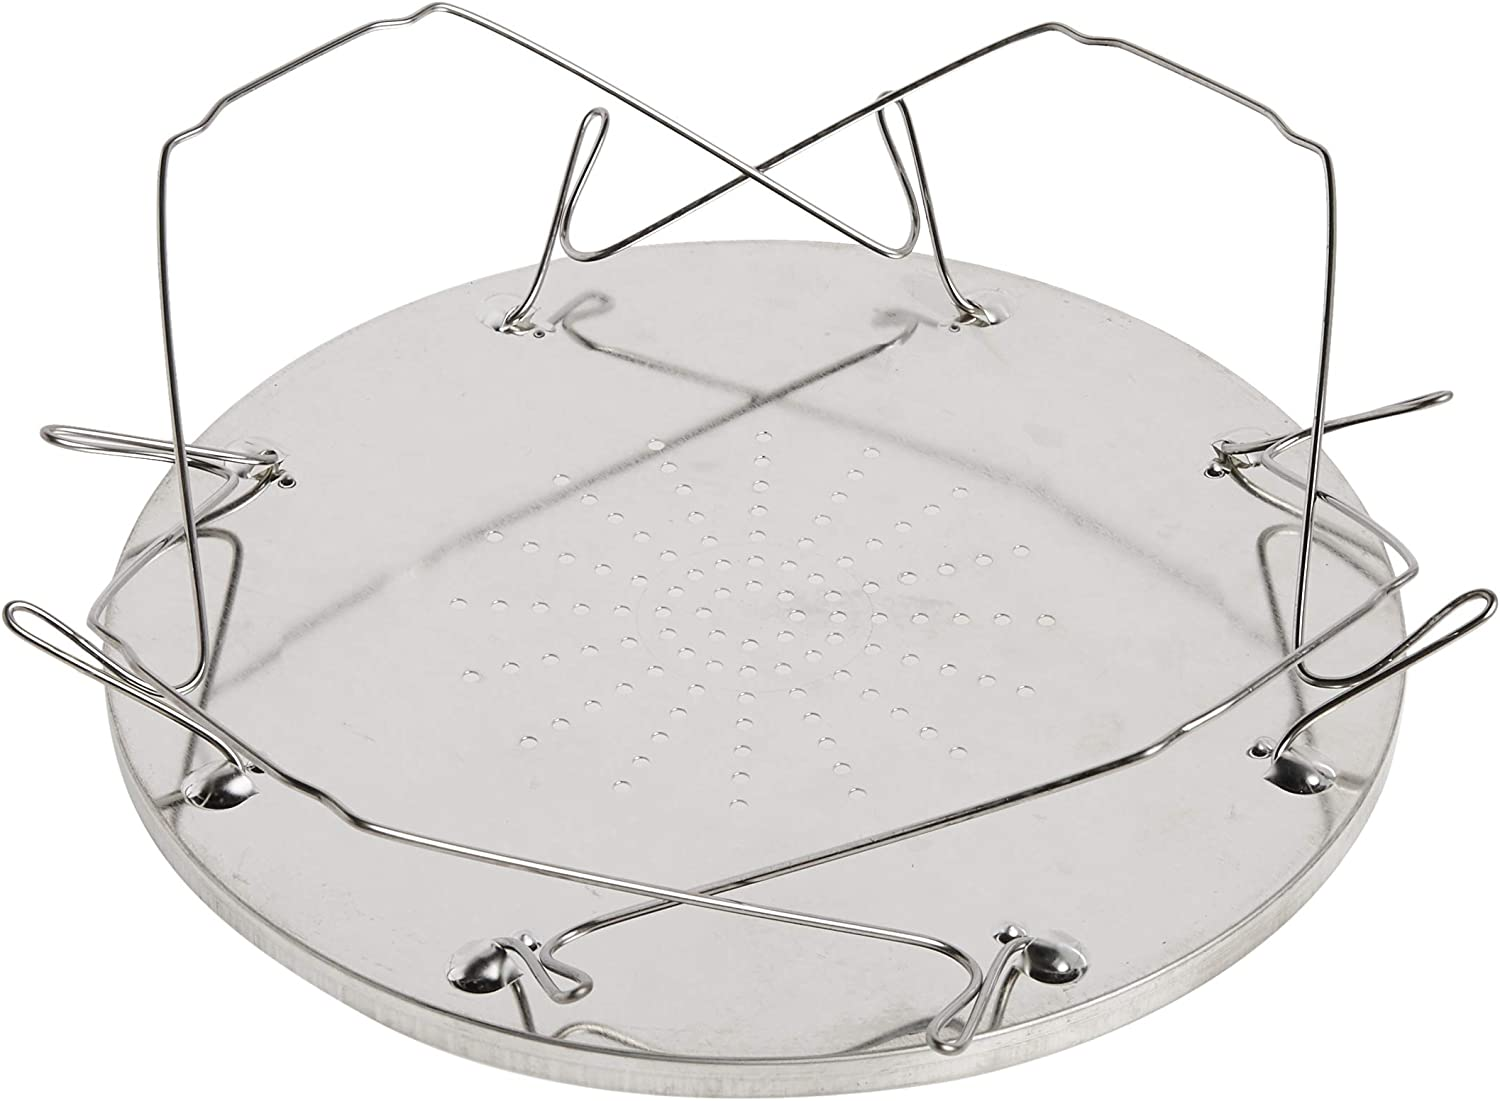 Coughlans Camp Stove Toaster - Tetera